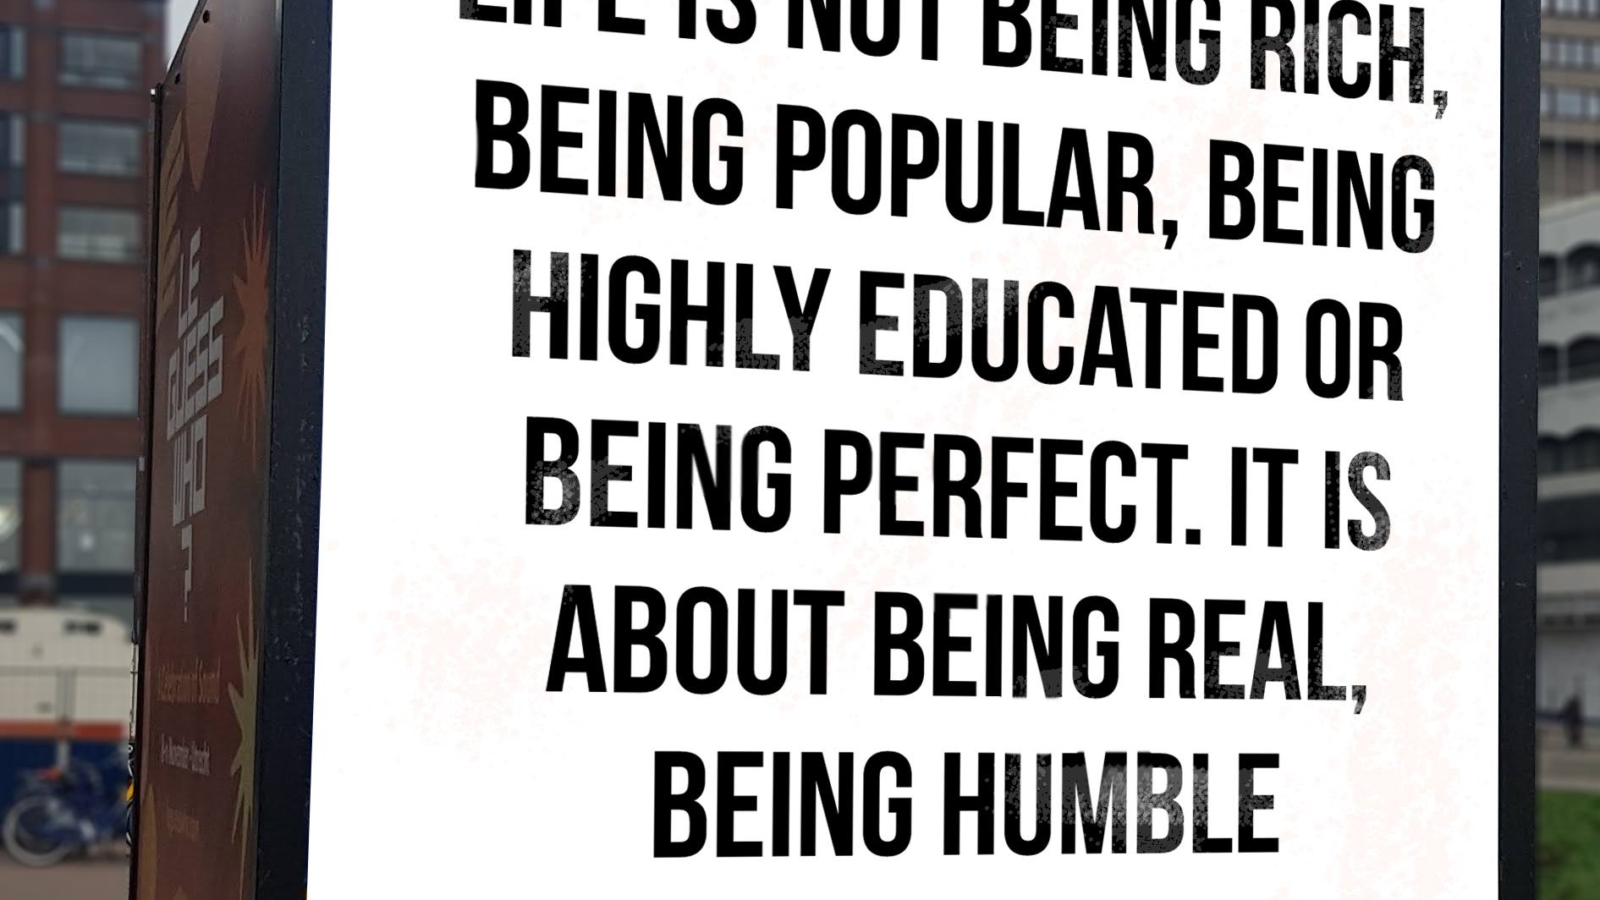 being real, humble and kind